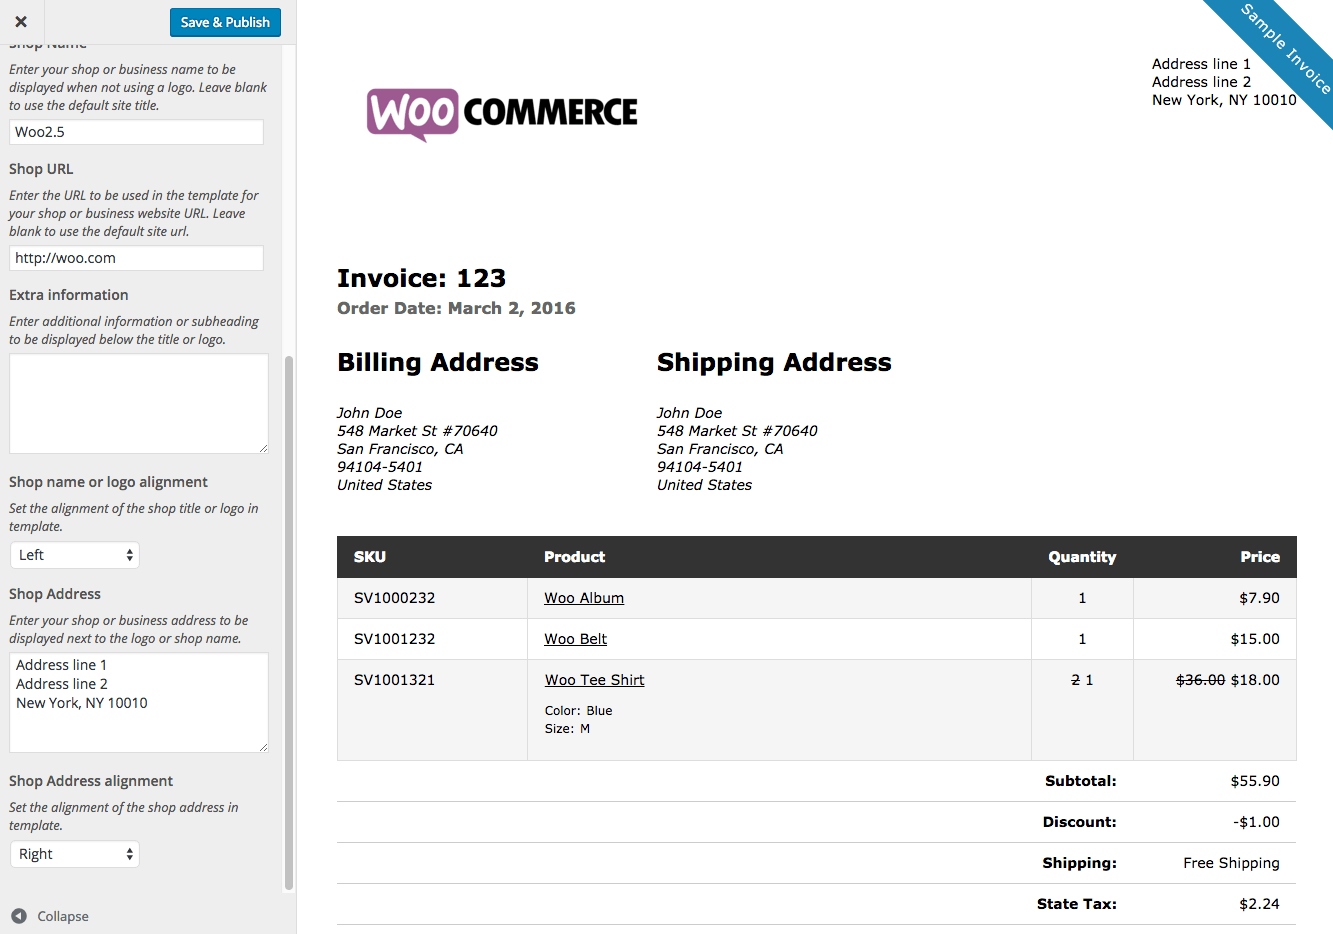 Weverducreus  Outstanding Print Invoices Amp Packing Lists  Woocommerce With Gorgeous Woocommerce Print Invoices  Packing Lists Customizer With Delightful Zipcash Invoice Also Automotive Invoice In Addition How To Create A Paypal Invoice And New Car Invoice As Well As Invoice Email Template Additionally Invoice Form Pdf From Woocommercecom With Weverducreus  Gorgeous Print Invoices Amp Packing Lists  Woocommerce With Delightful Woocommerce Print Invoices  Packing Lists Customizer And Outstanding Zipcash Invoice Also Automotive Invoice In Addition How To Create A Paypal Invoice From Woocommercecom